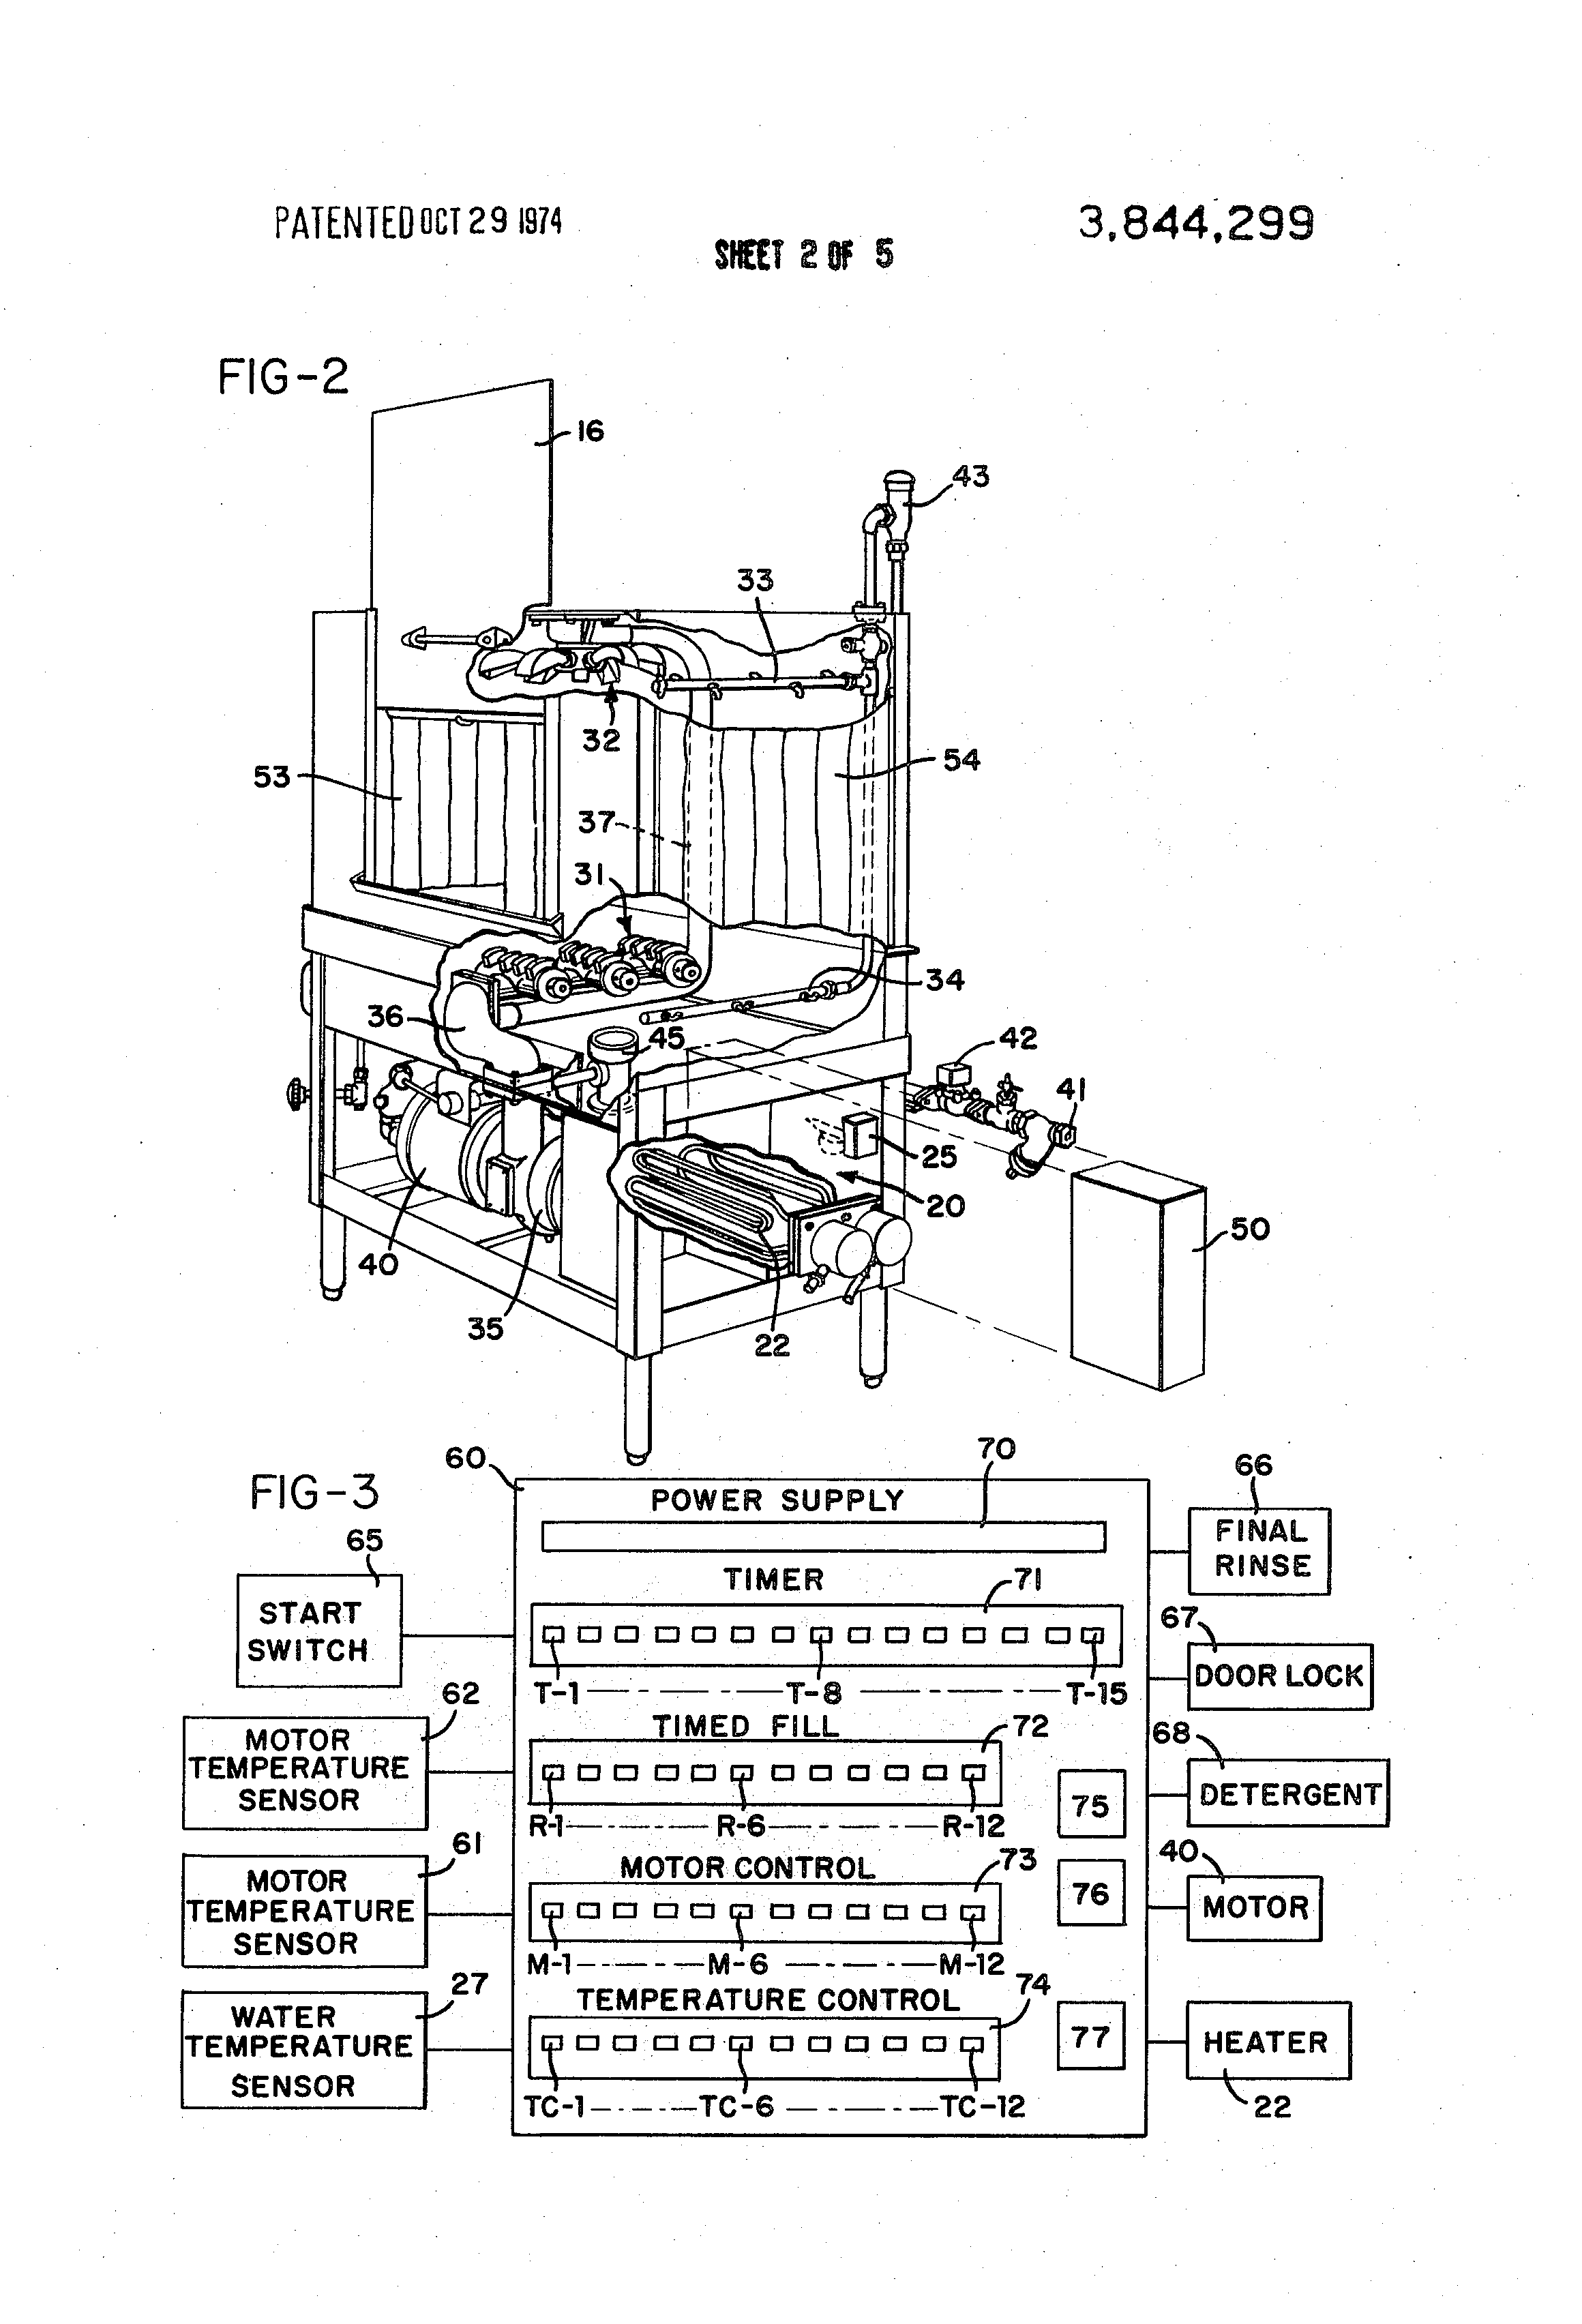 patent us3844299 - control circuit for dishwasher